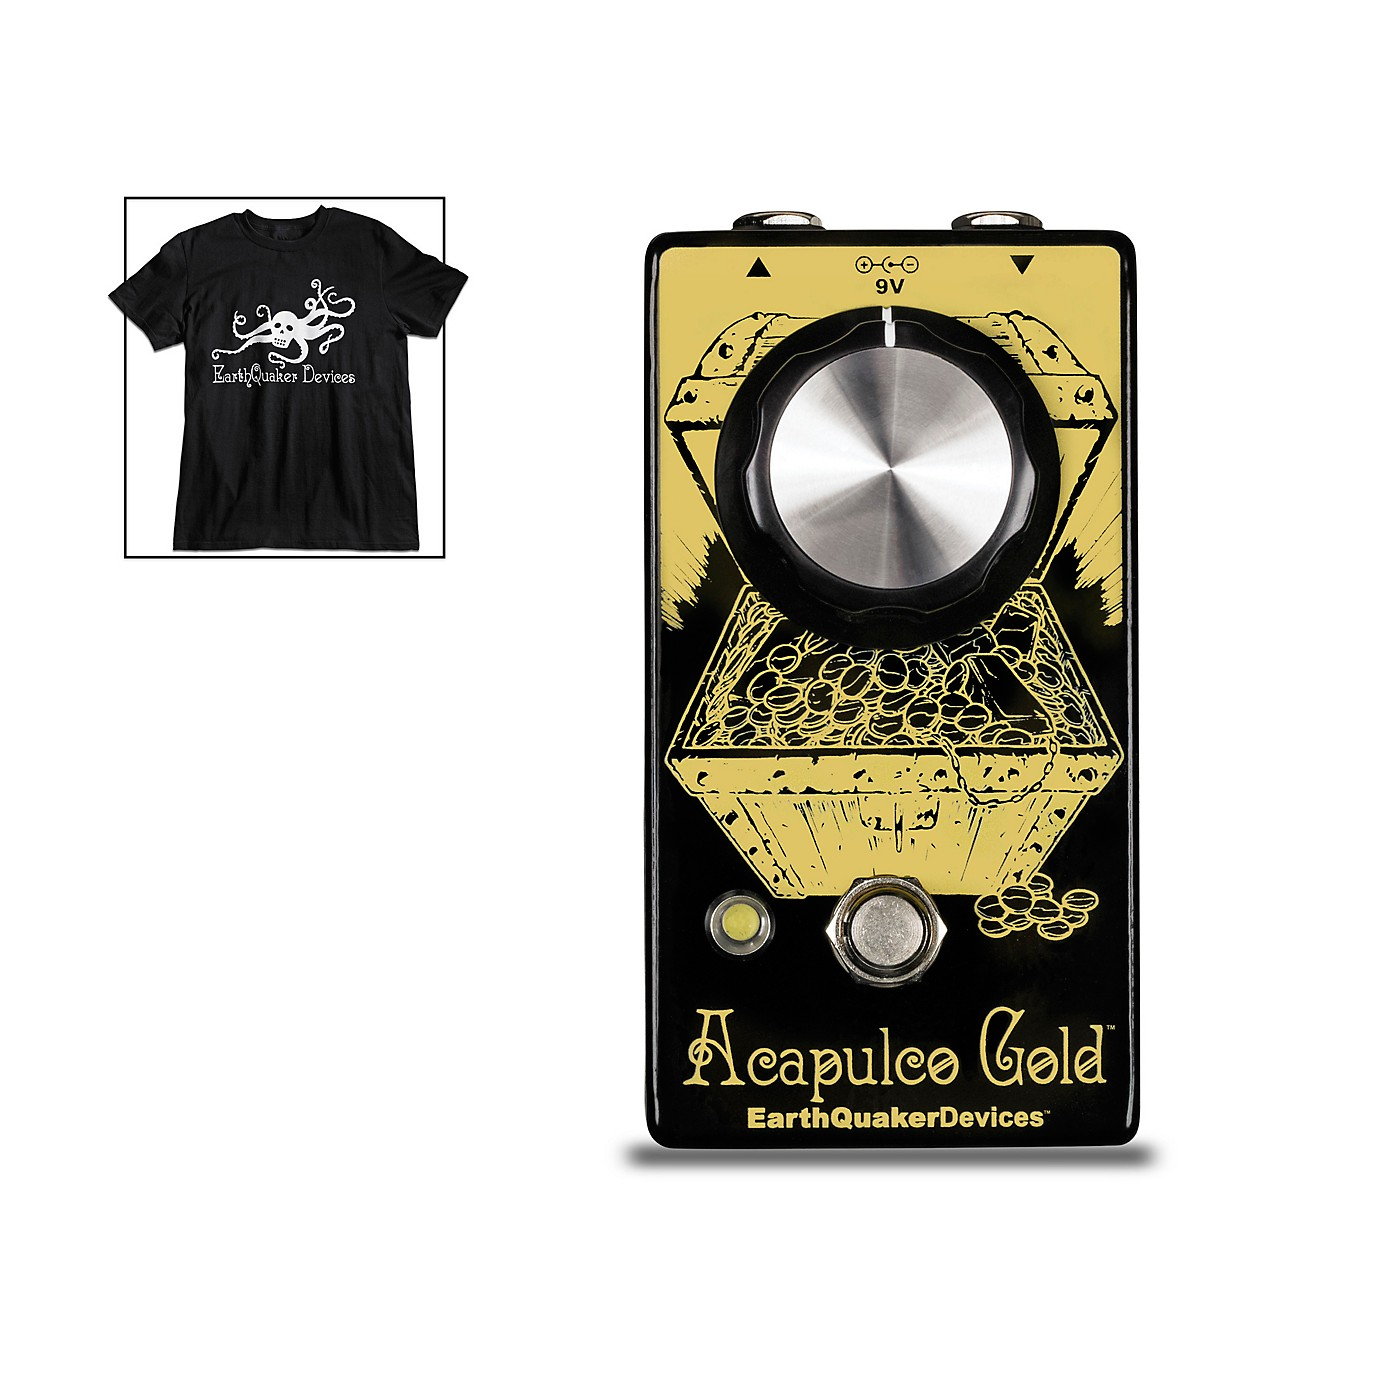 Earthquaker Devices Acapulco Gold V2 Power Amp Distortion Effects Pedal and Octoskull T-Shirt Large Black thumbnail